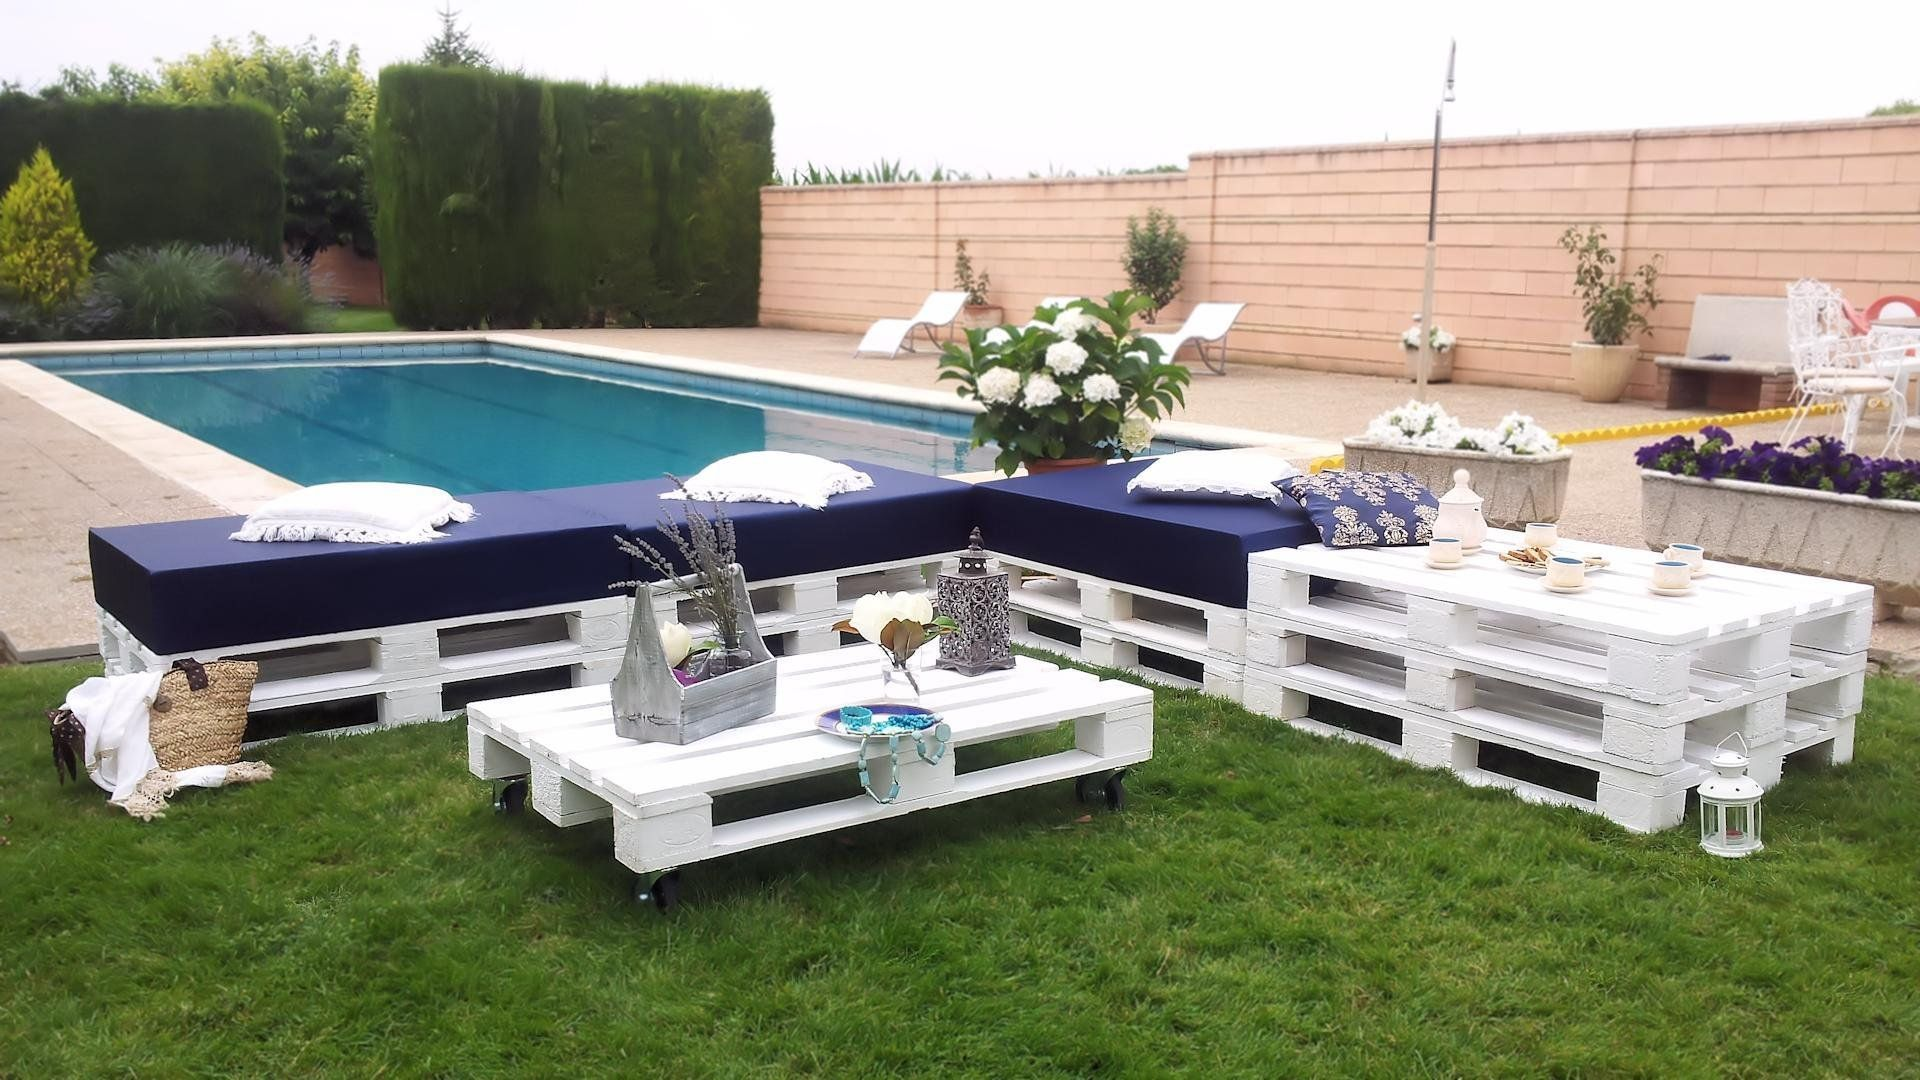 Chill Out Blanco de palets | patio | Pinterest | Palets, Blanco y ...